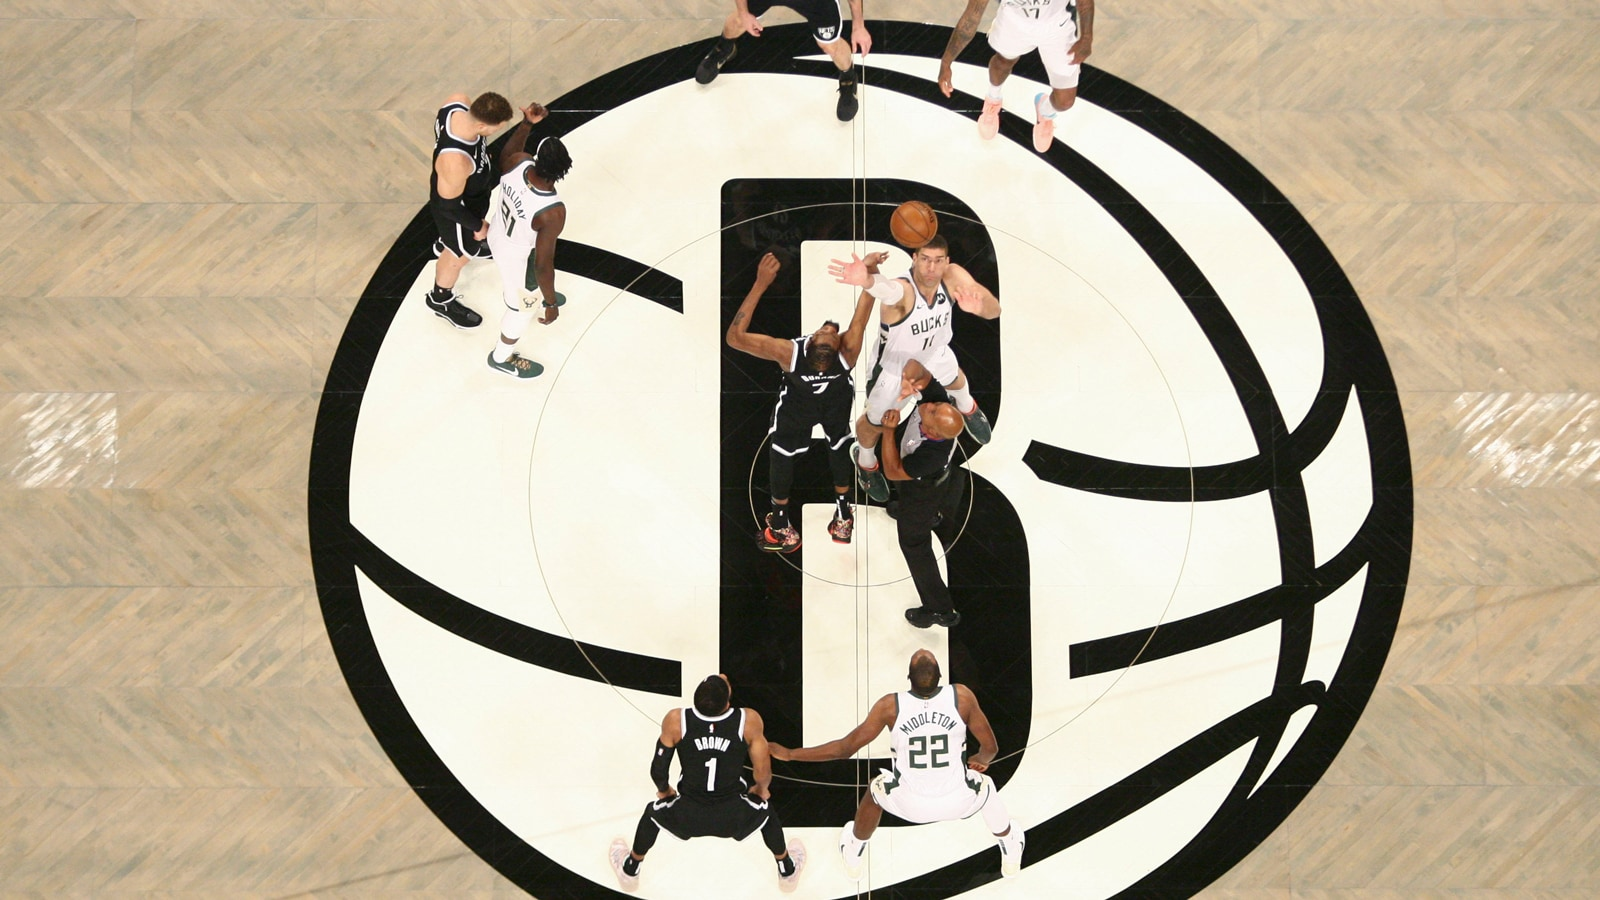 Nets Bucks tipoff, game 7 eastern conference finals